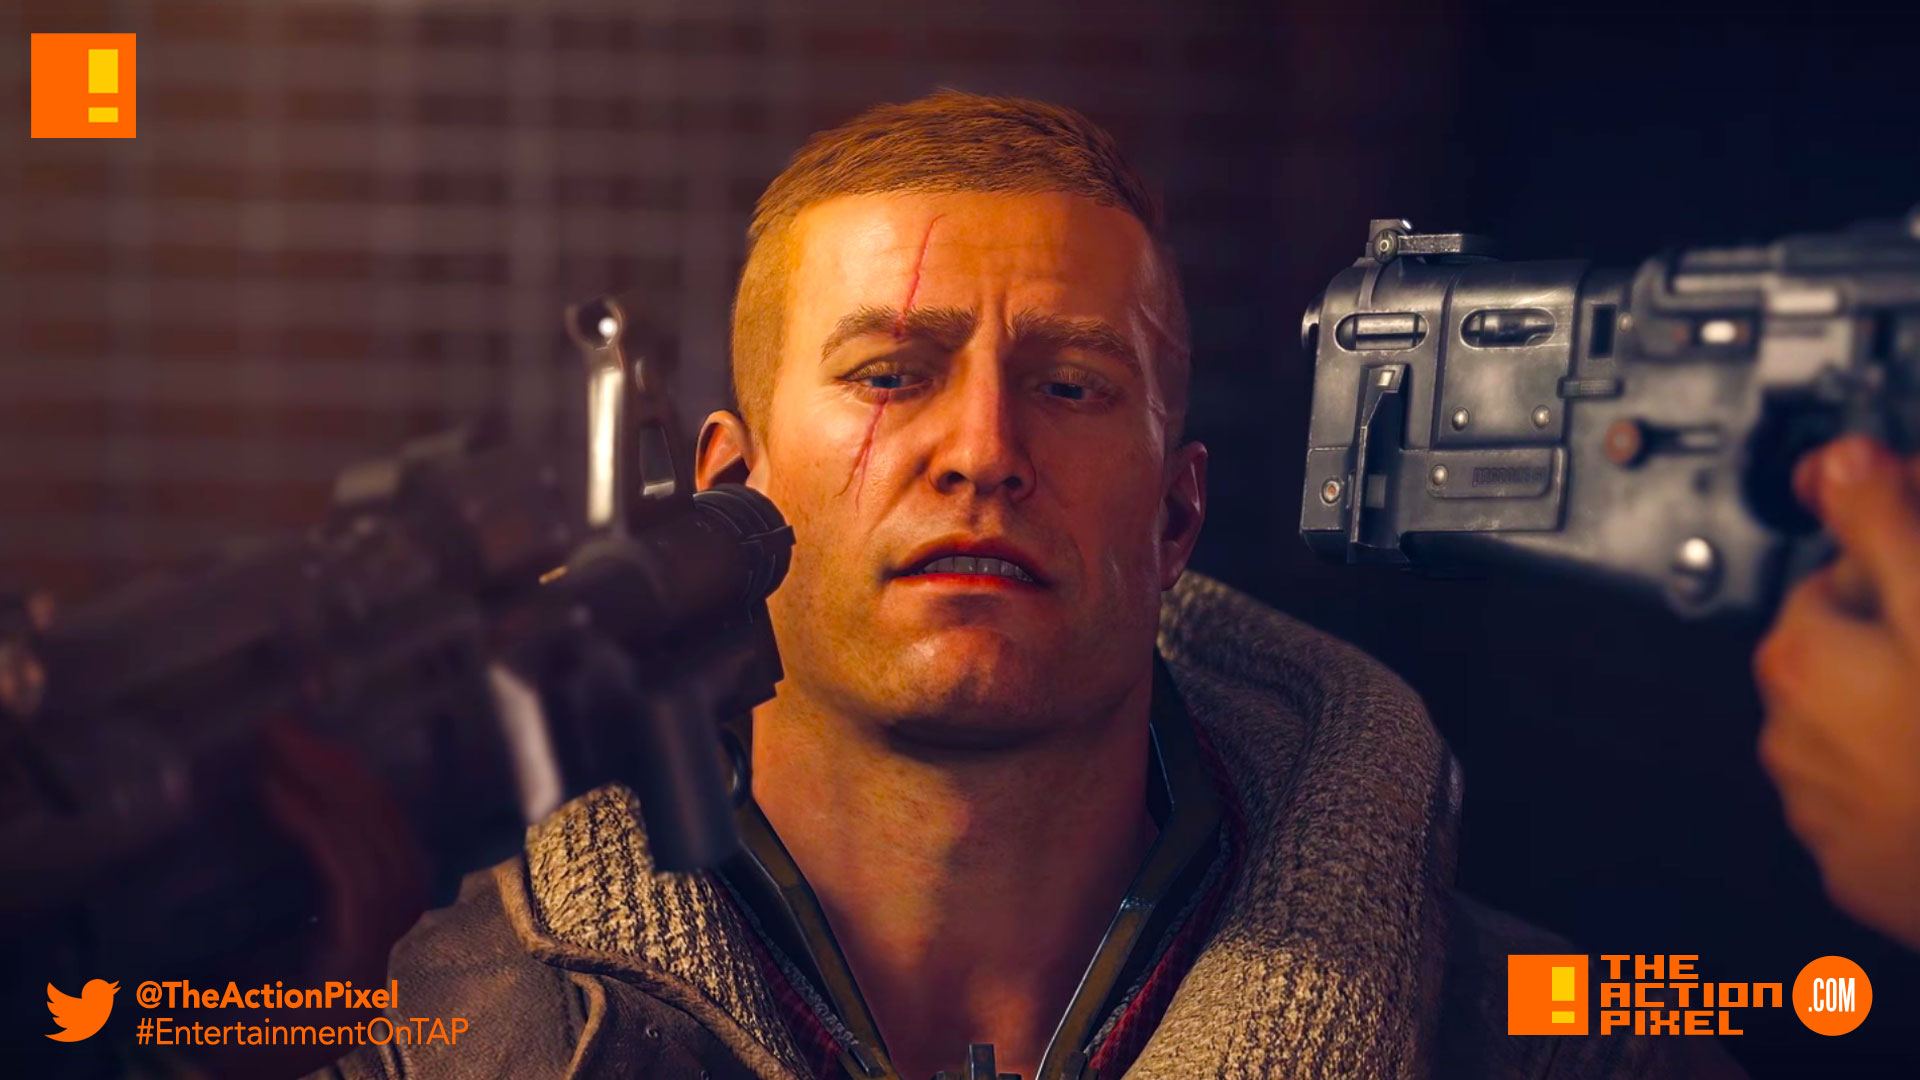 Wolfenstein Ii The New Colossus Reveal Trailer Reminds Us How